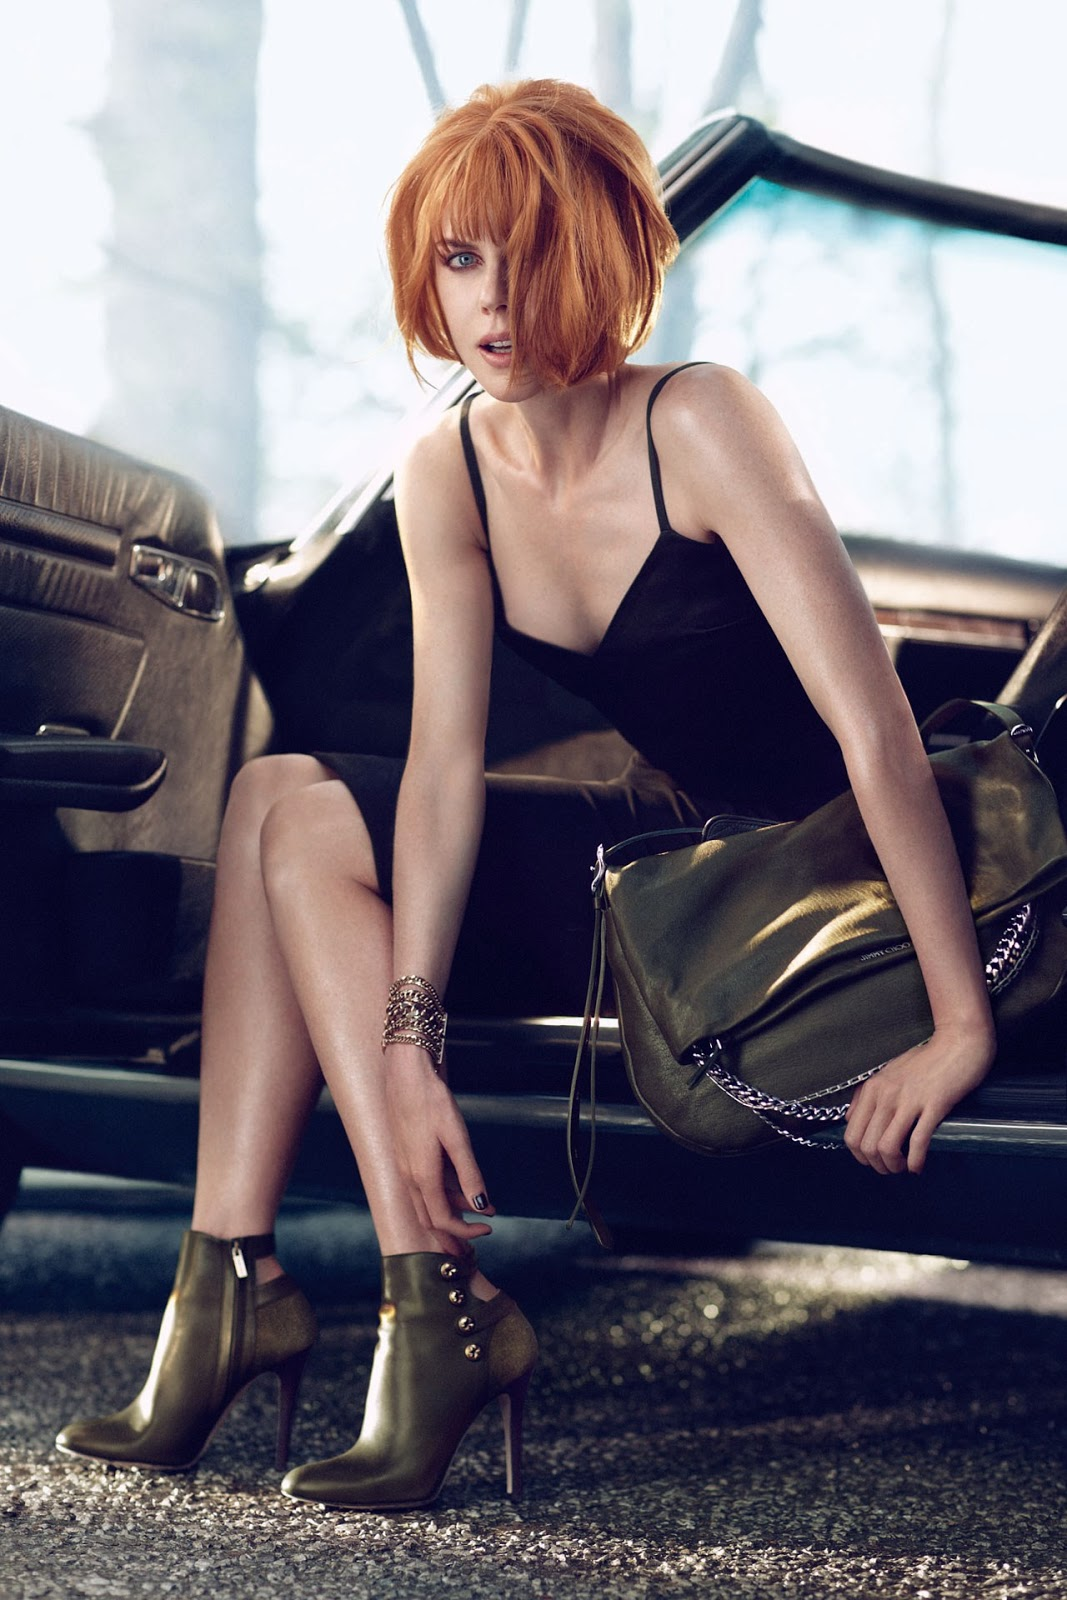 Jimmy Choo Features Nicole Kidman with Mercedes SL